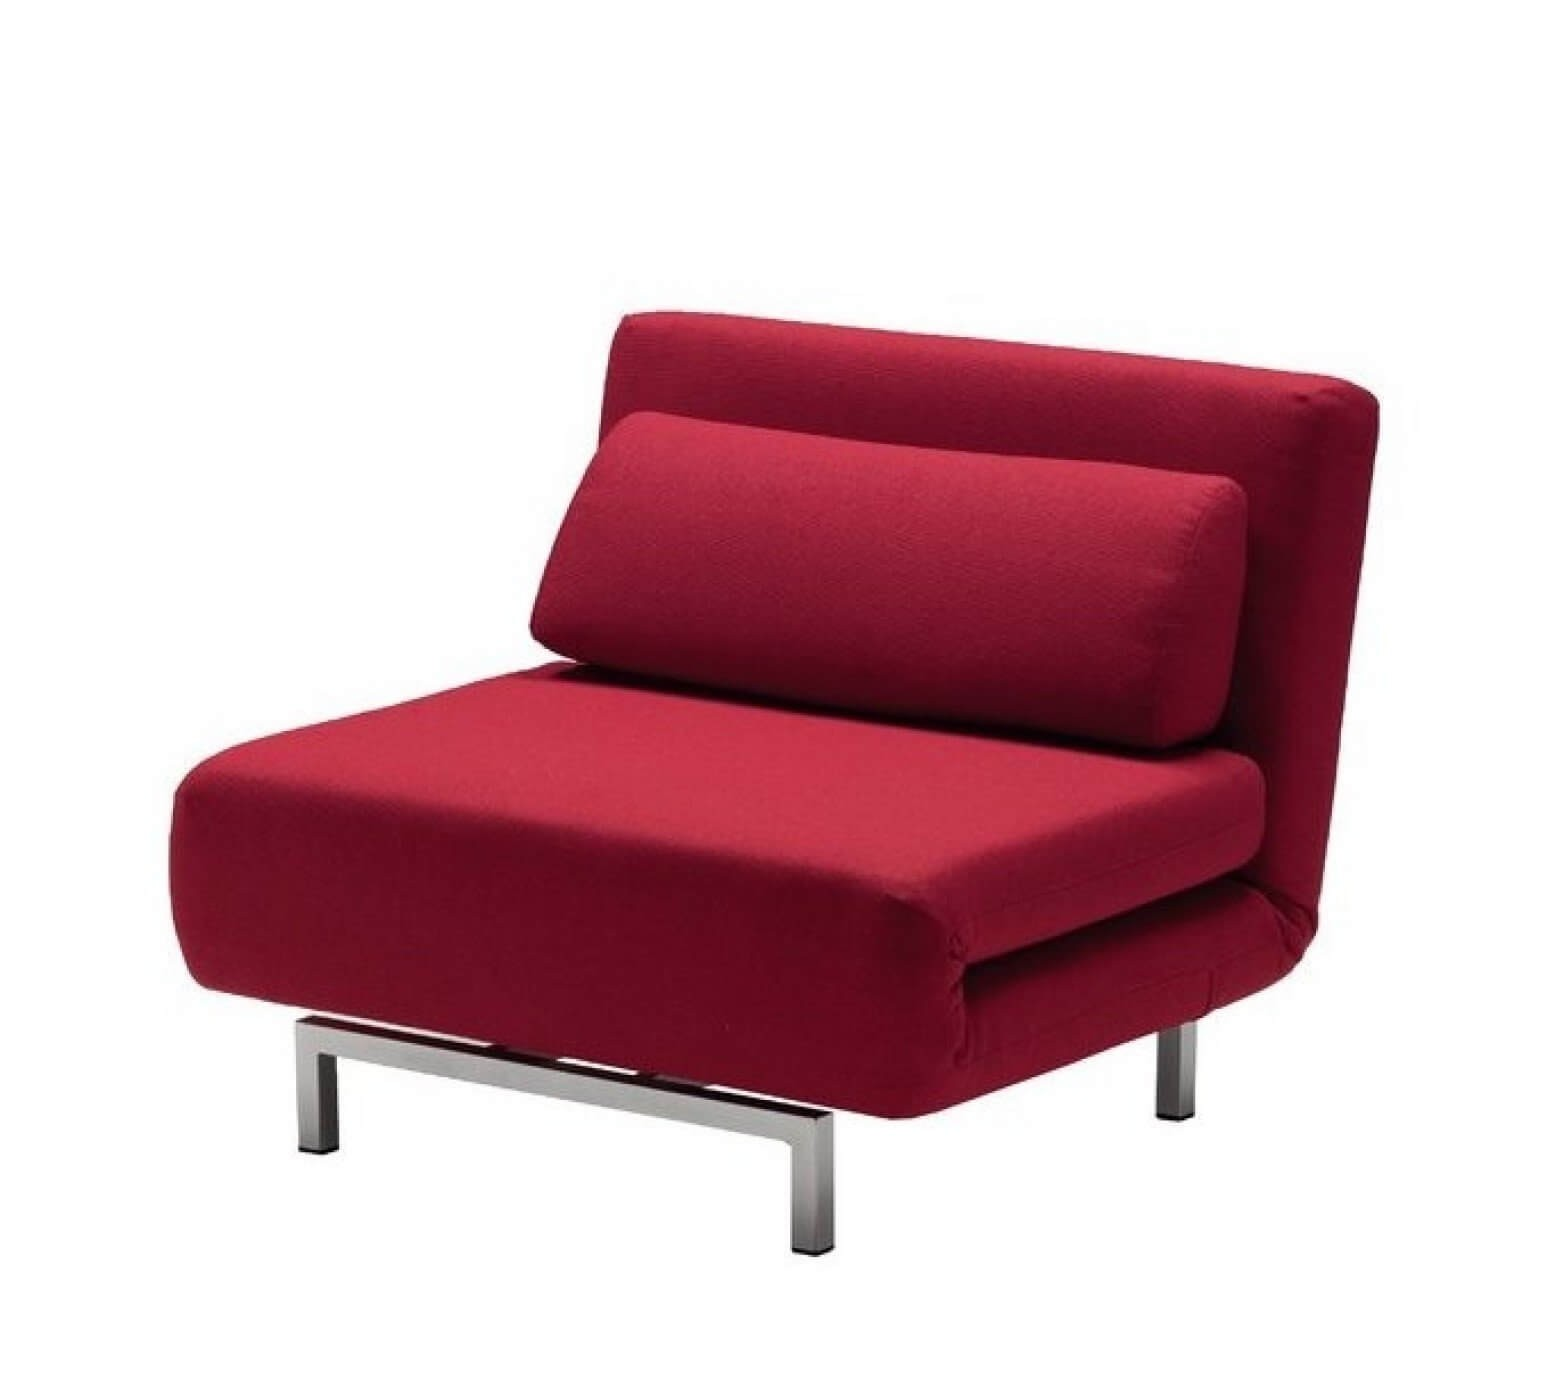 Lk06 1 Premium Chair Bed Red By J M Furniture Sohomod Com